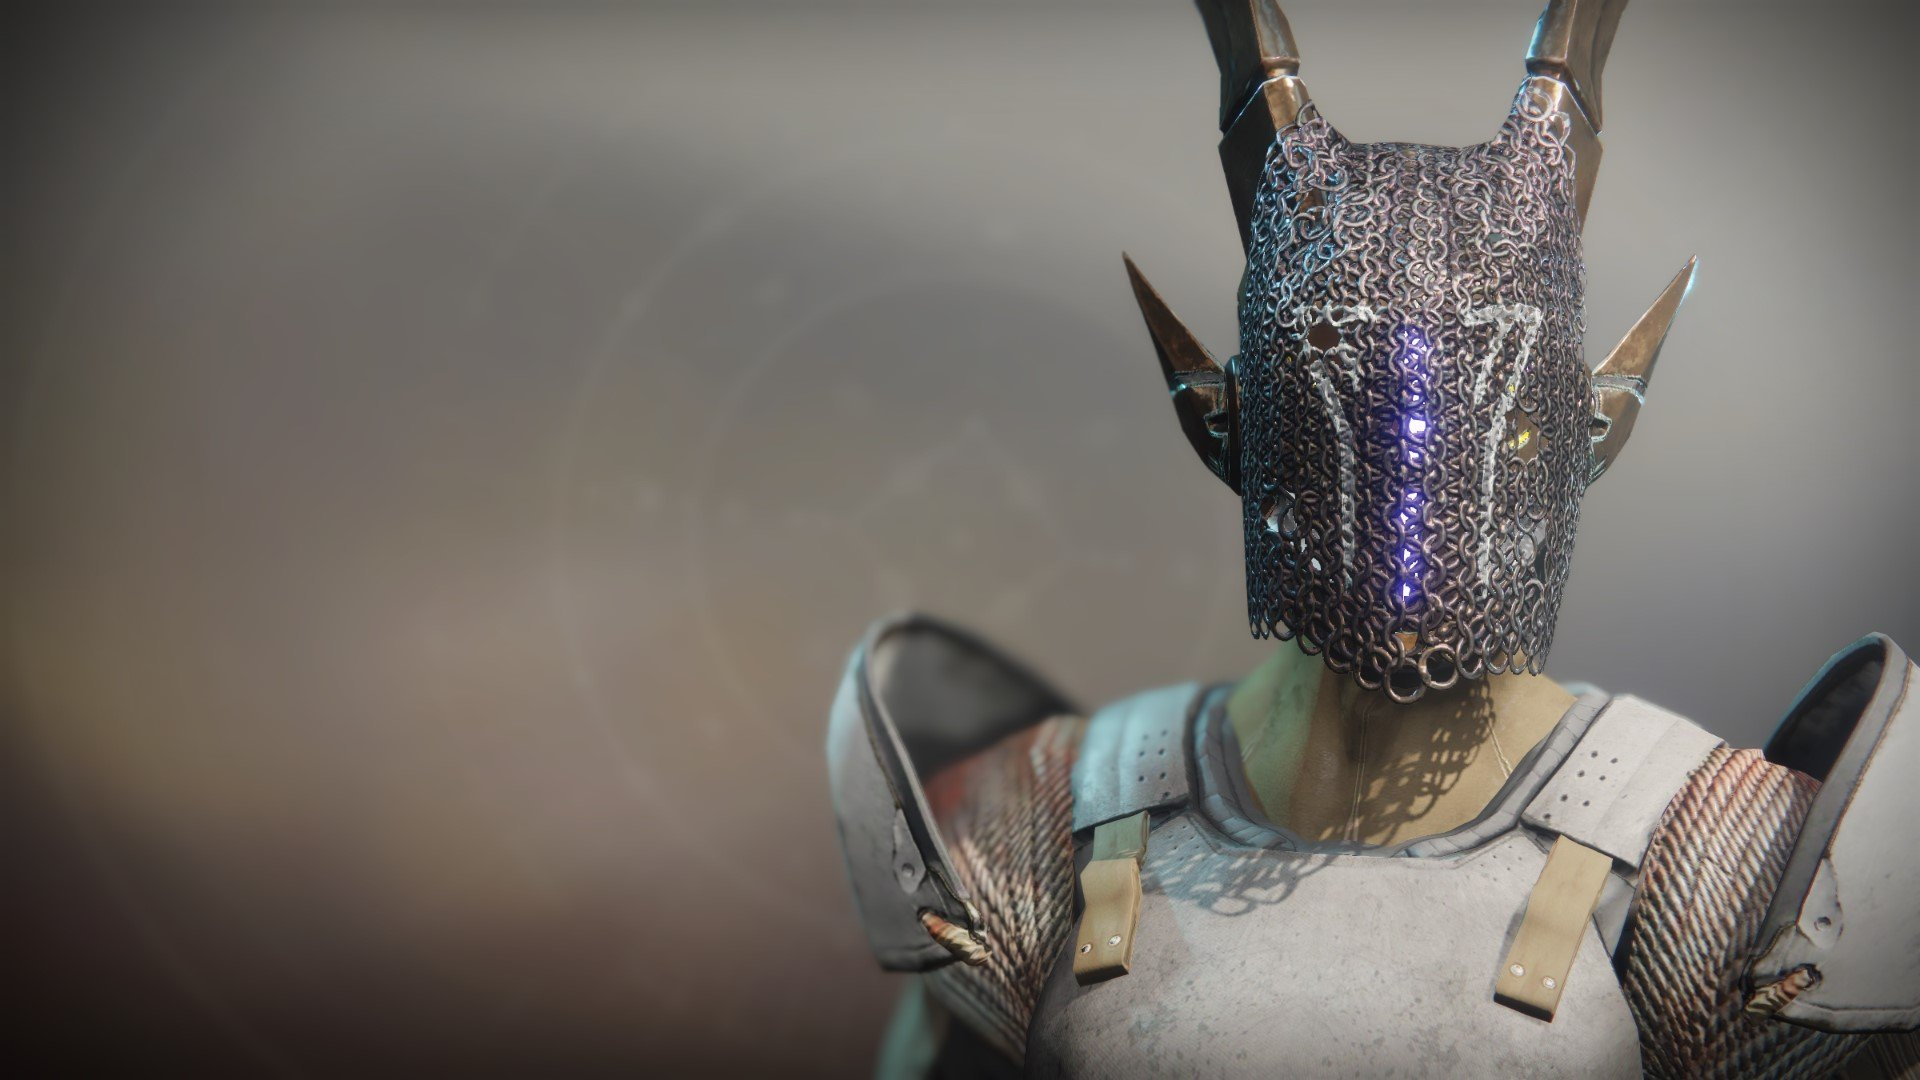 An in-game render of the Mask of the Quiet One.